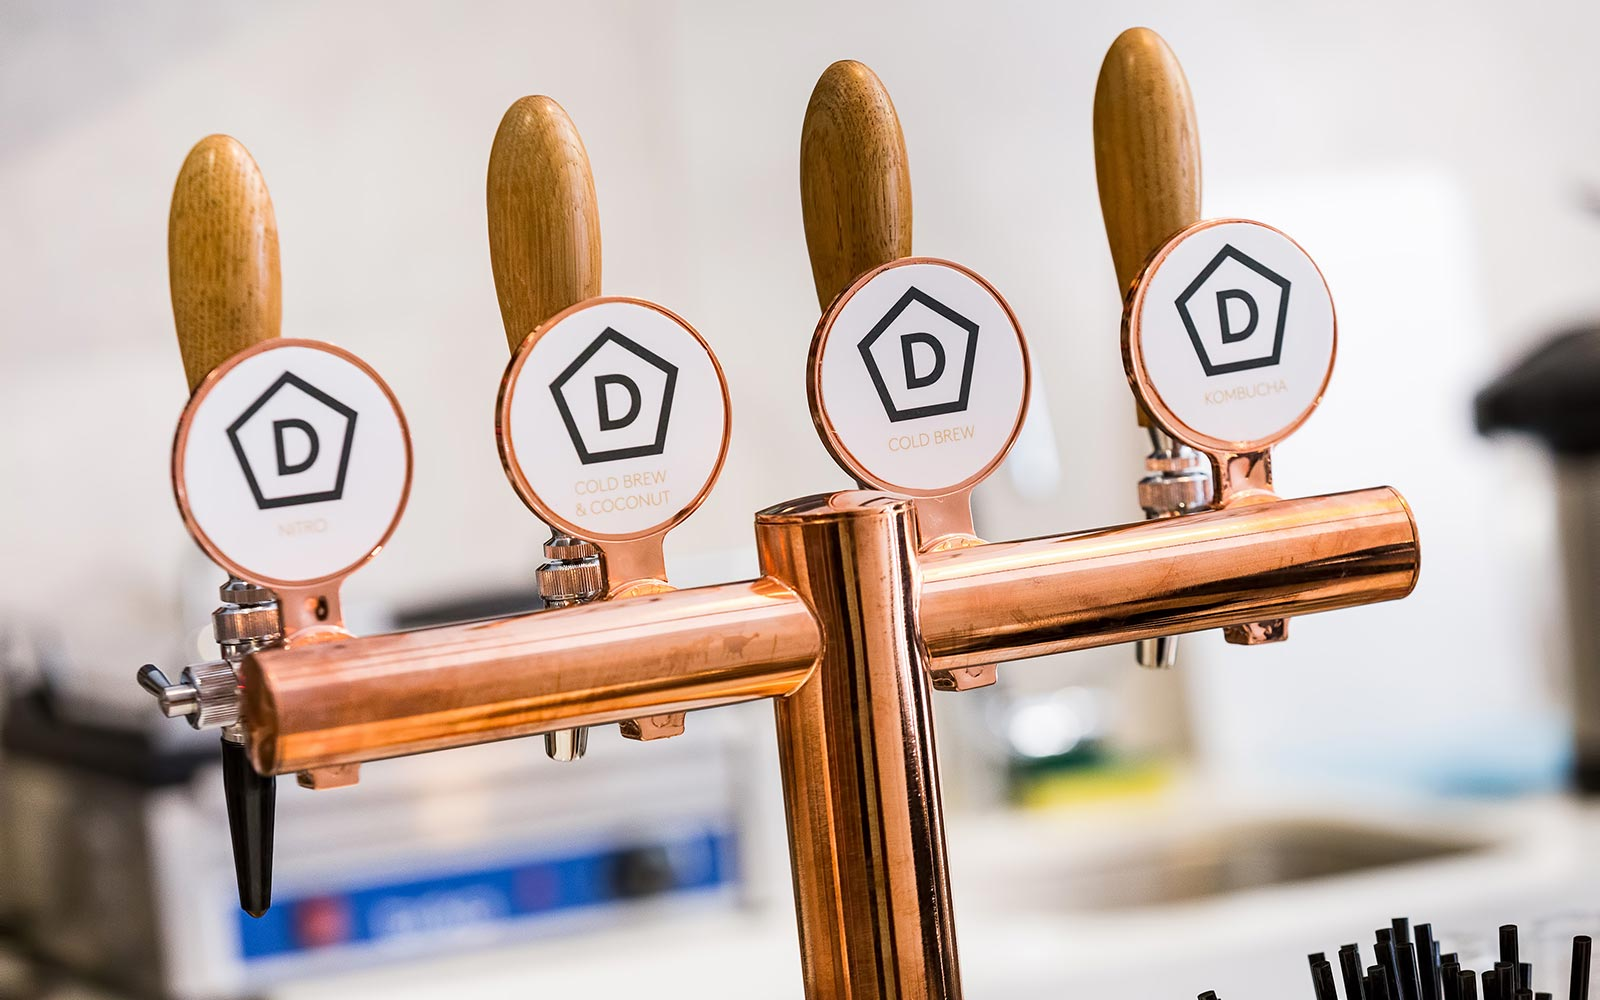 Danes Coffee on Tap